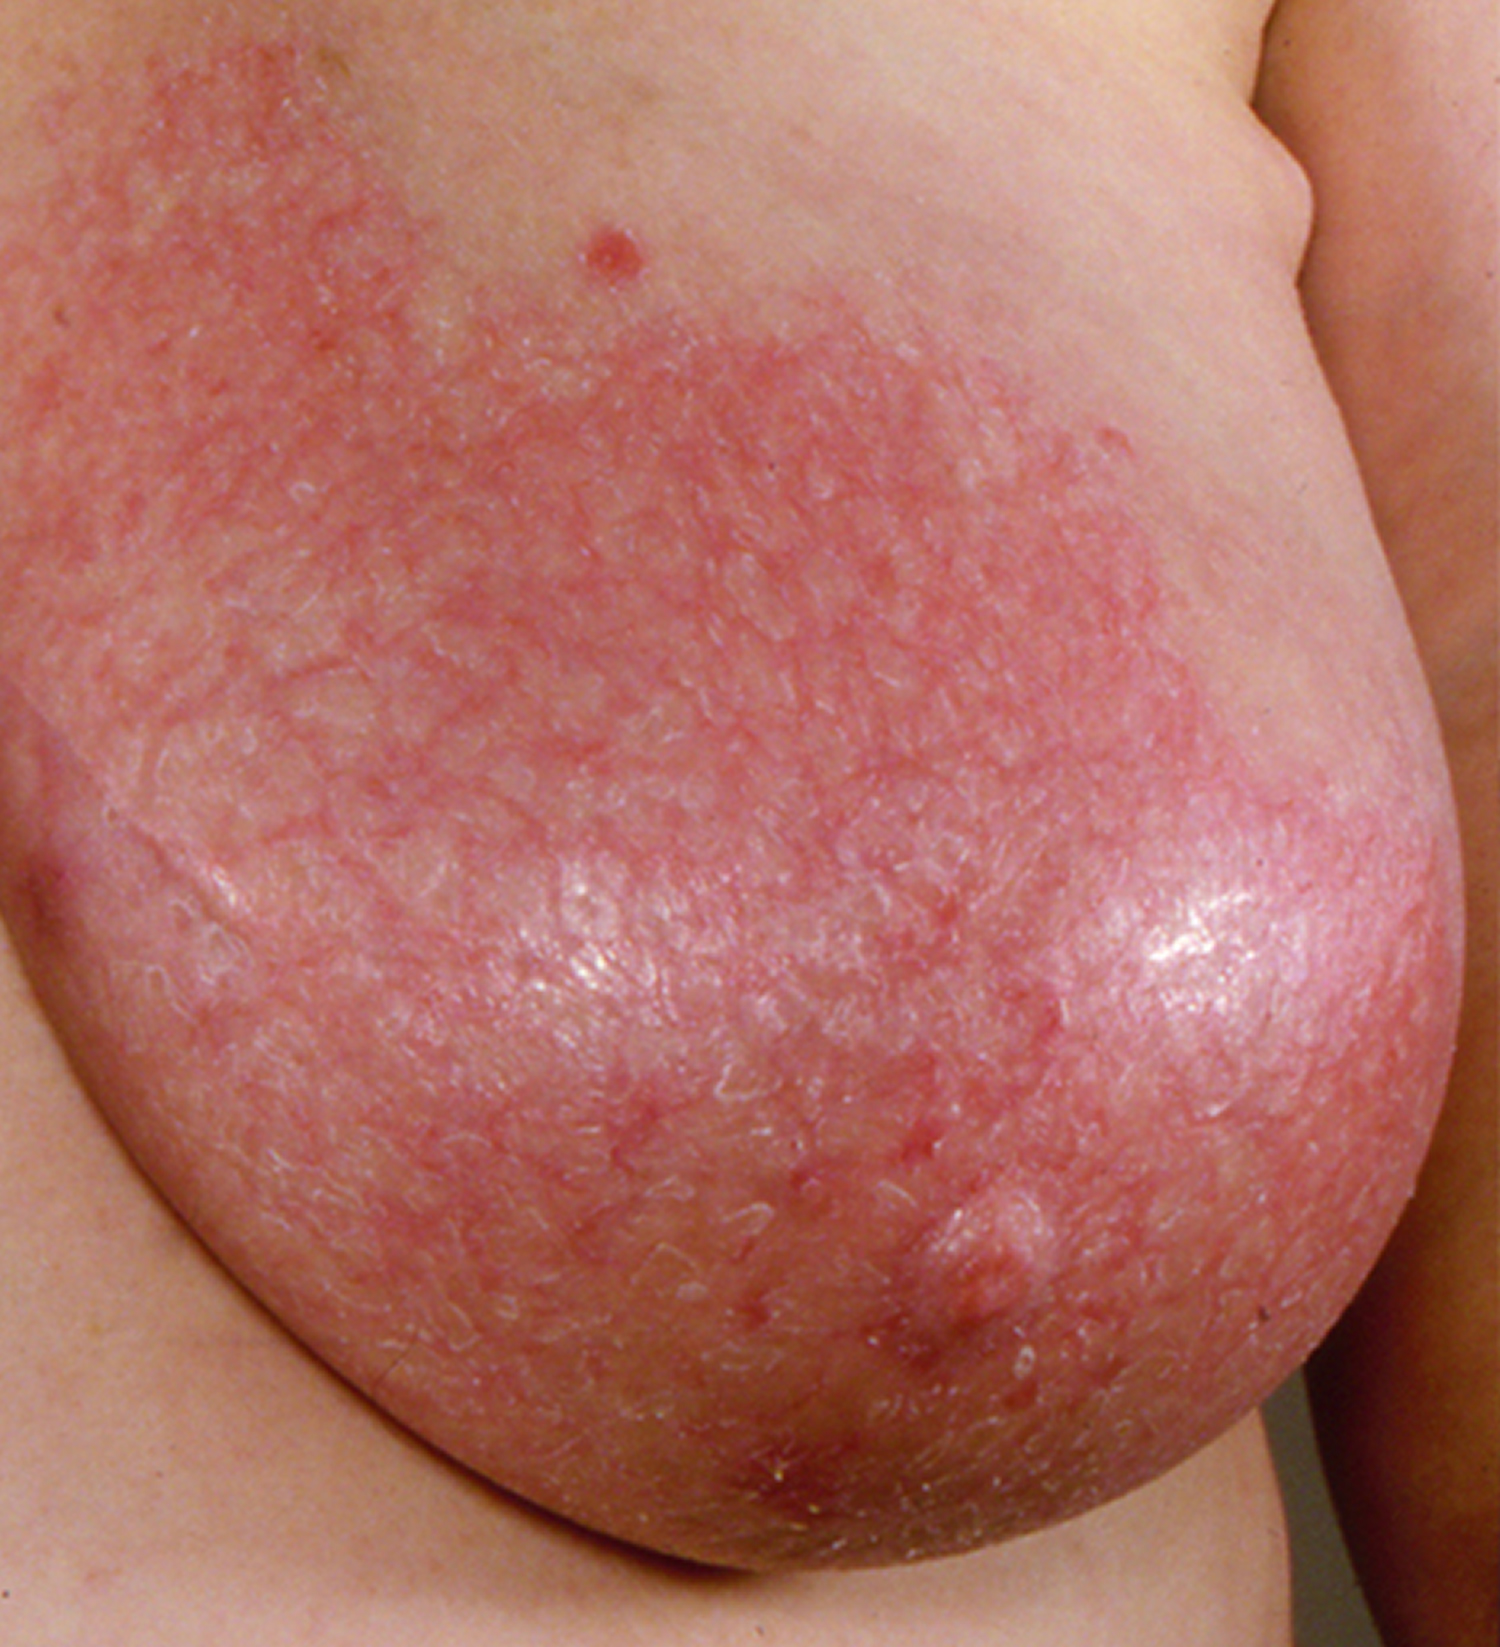 Breast Cancer Symptoms And Early Warning Signs